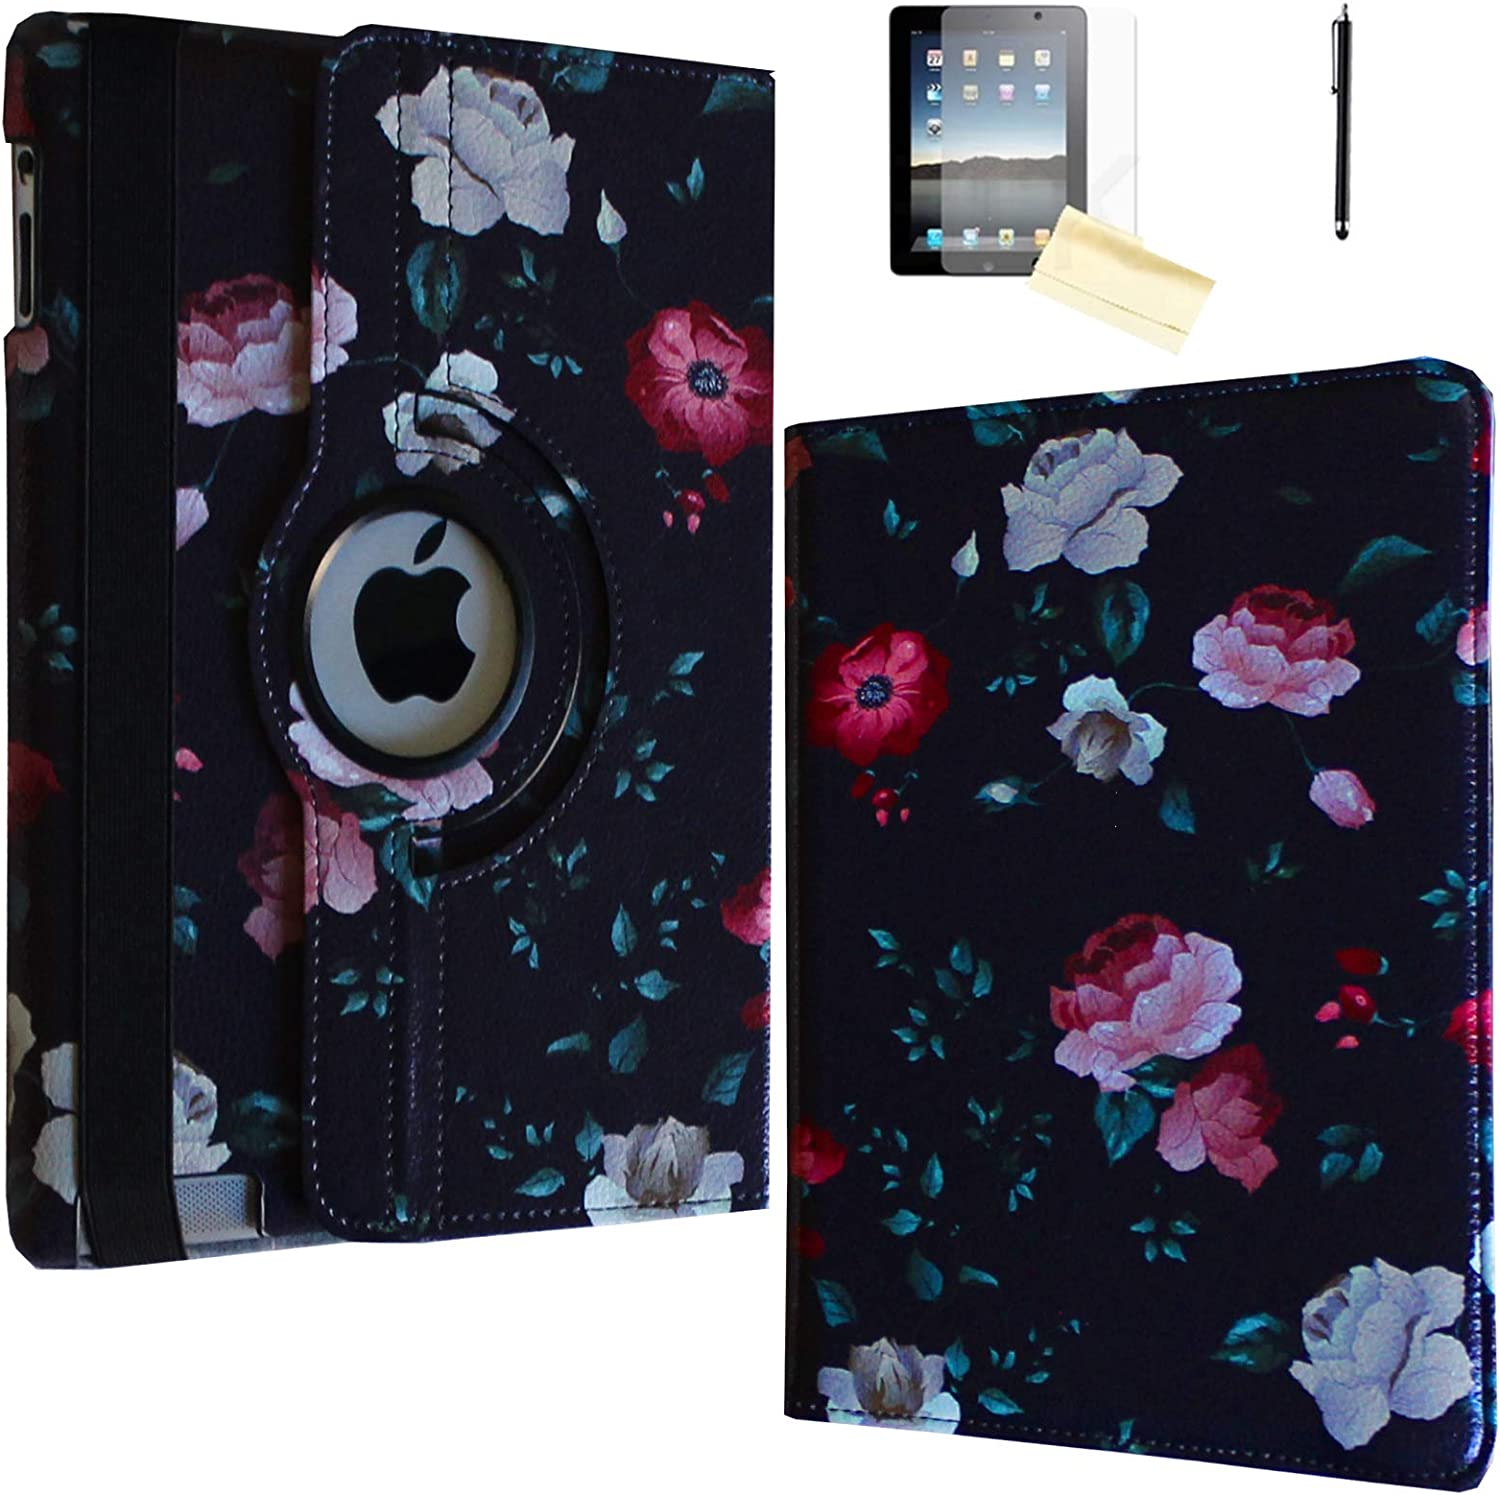 JYtrend Case for iPad Air (2013 Released), Rotating Stand Smart Case Cover Magnetic Auto Wake Up/Sleep for iPad Air (Air 1) A1474 A1475 A1476 (Black Flower)